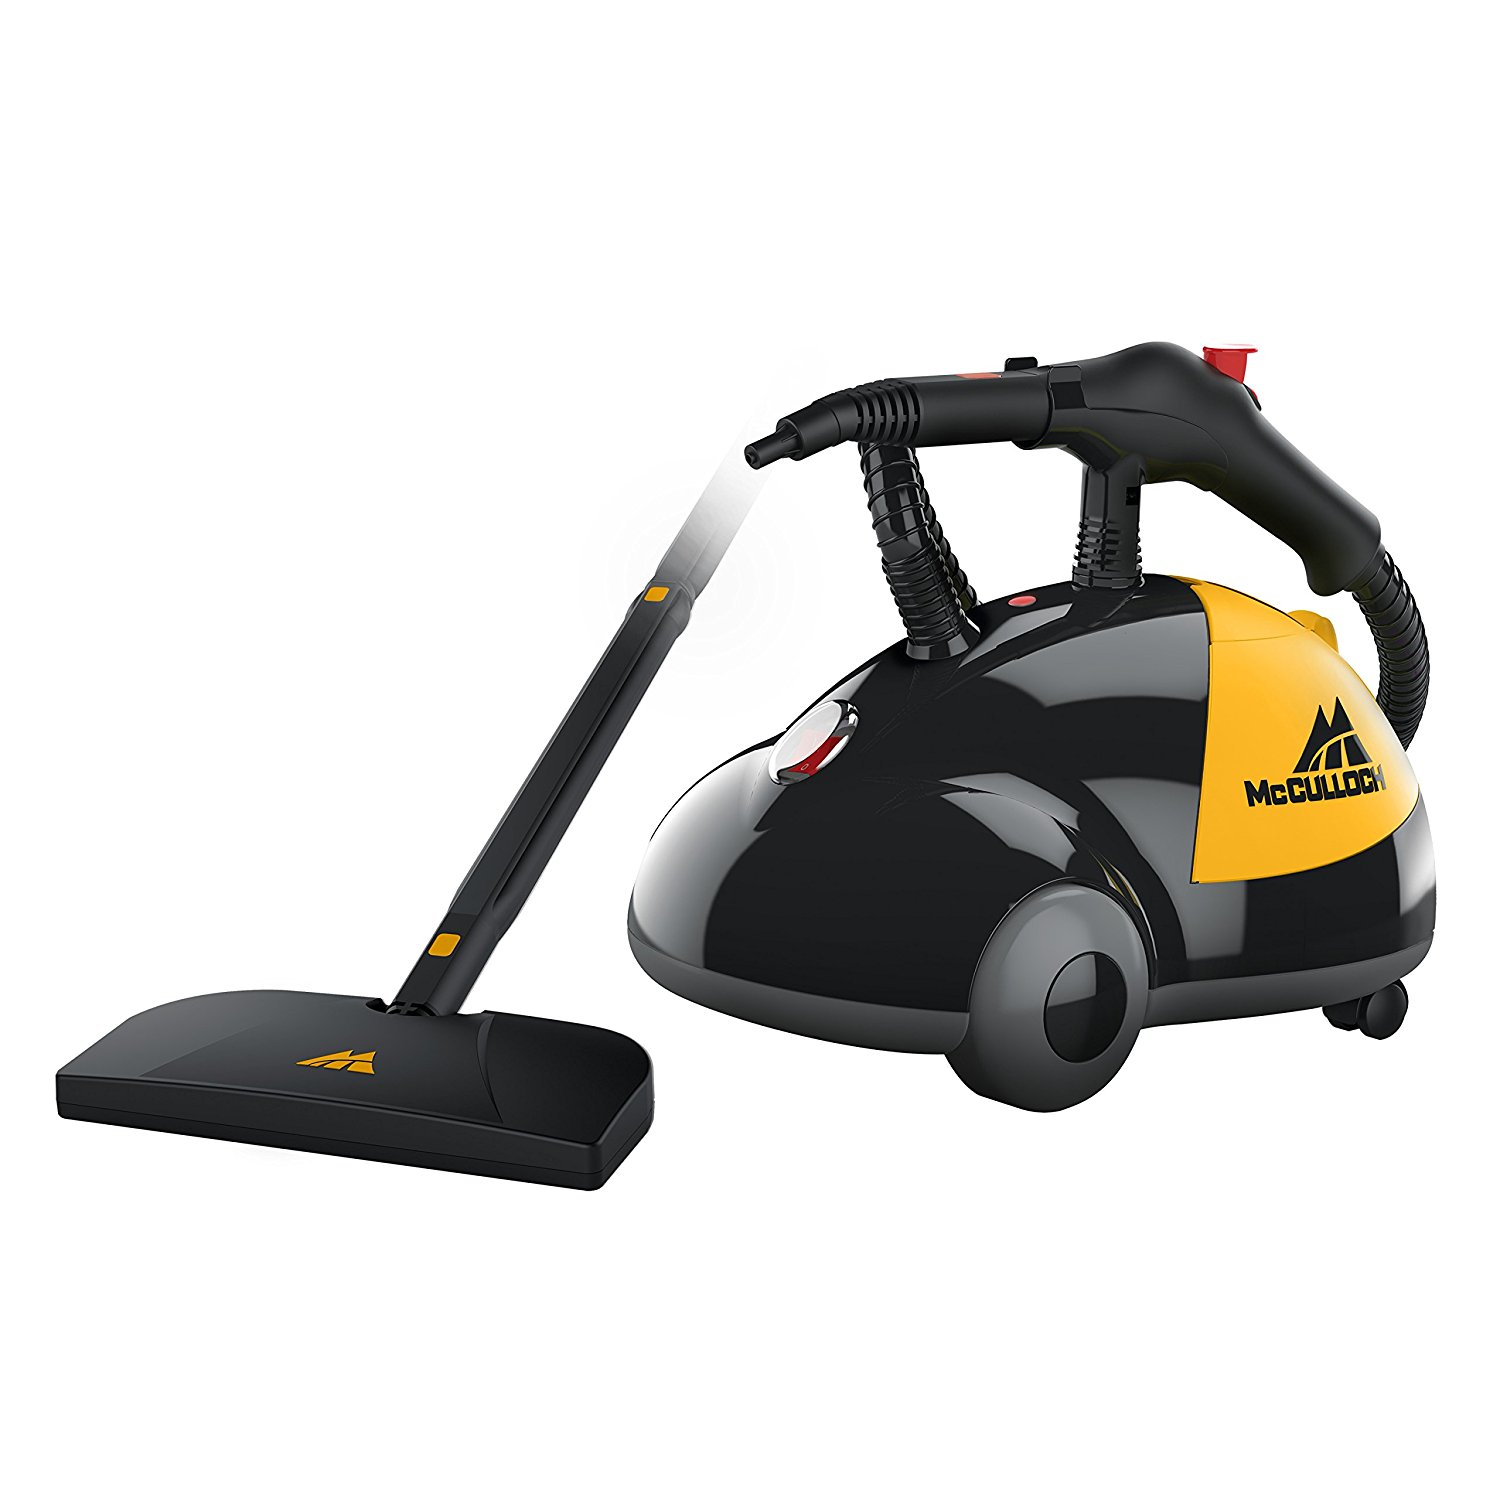 7 Best Steam Cleaners For Carpets Tiles Amp Floors